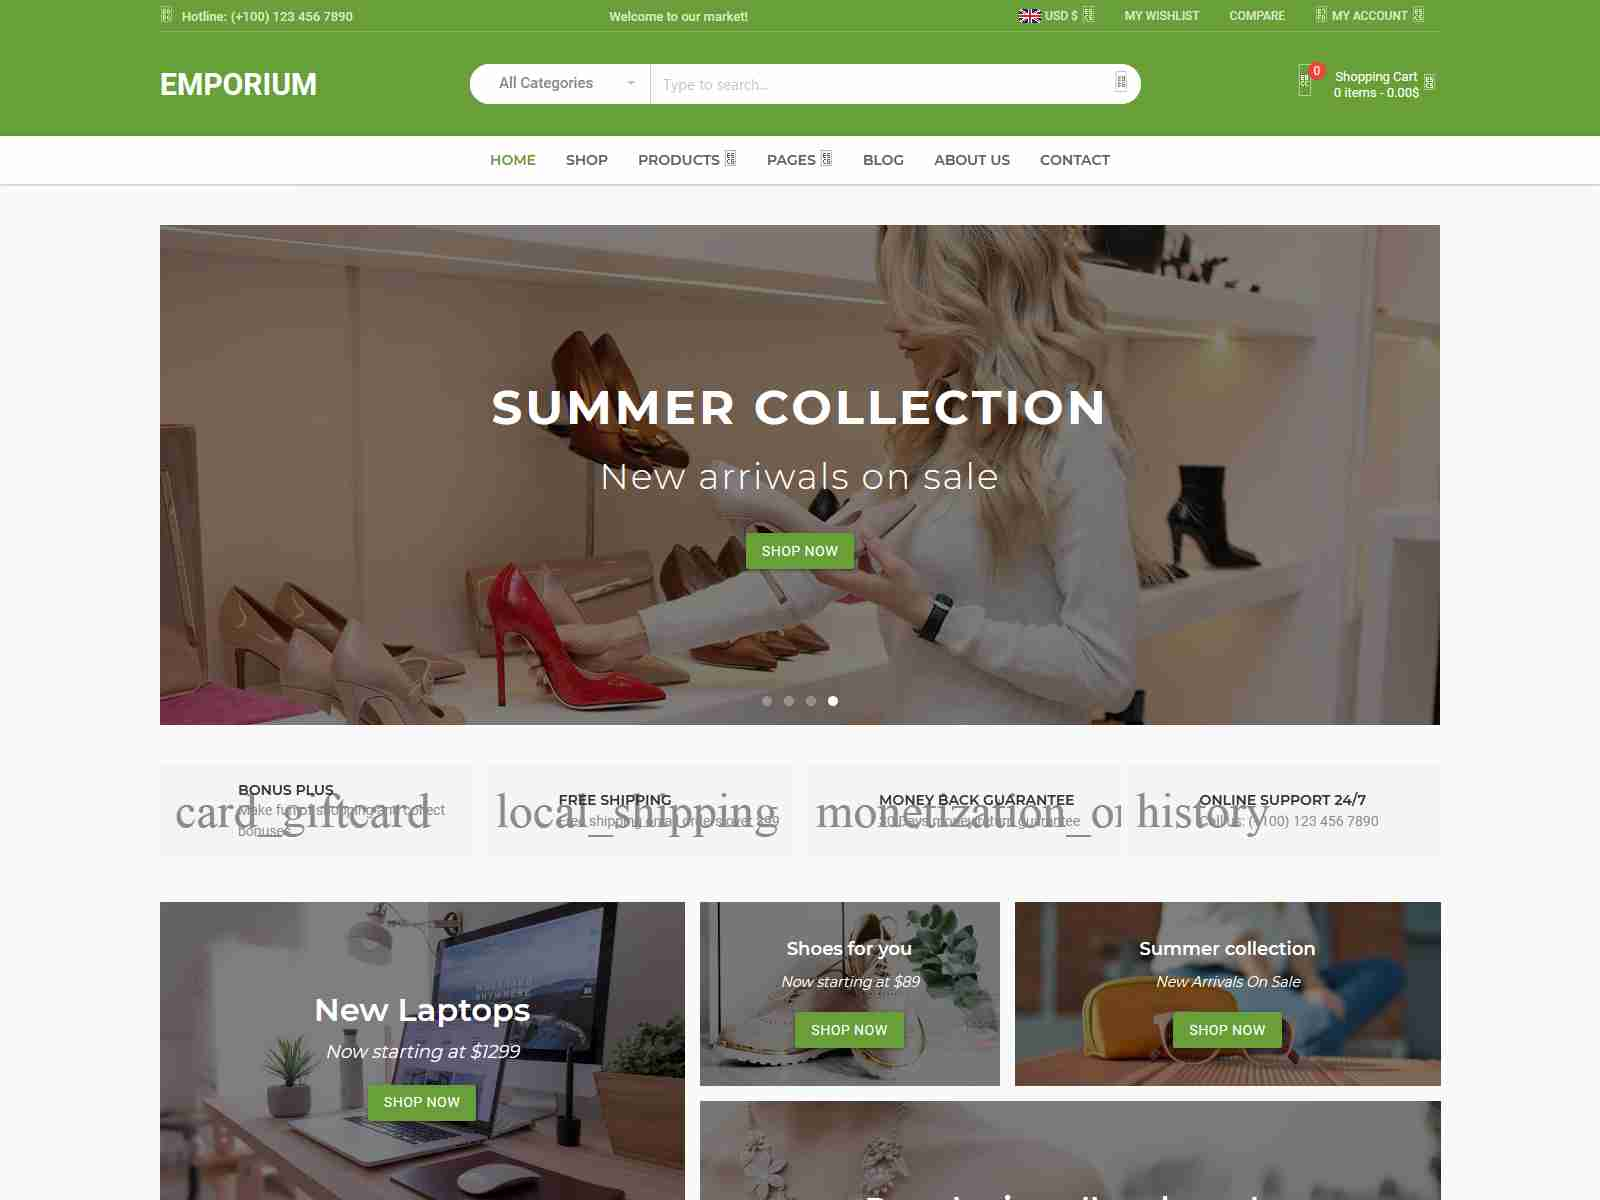 Emporium - Material Design eCommerce WordPress Theme fashion wordpress themes